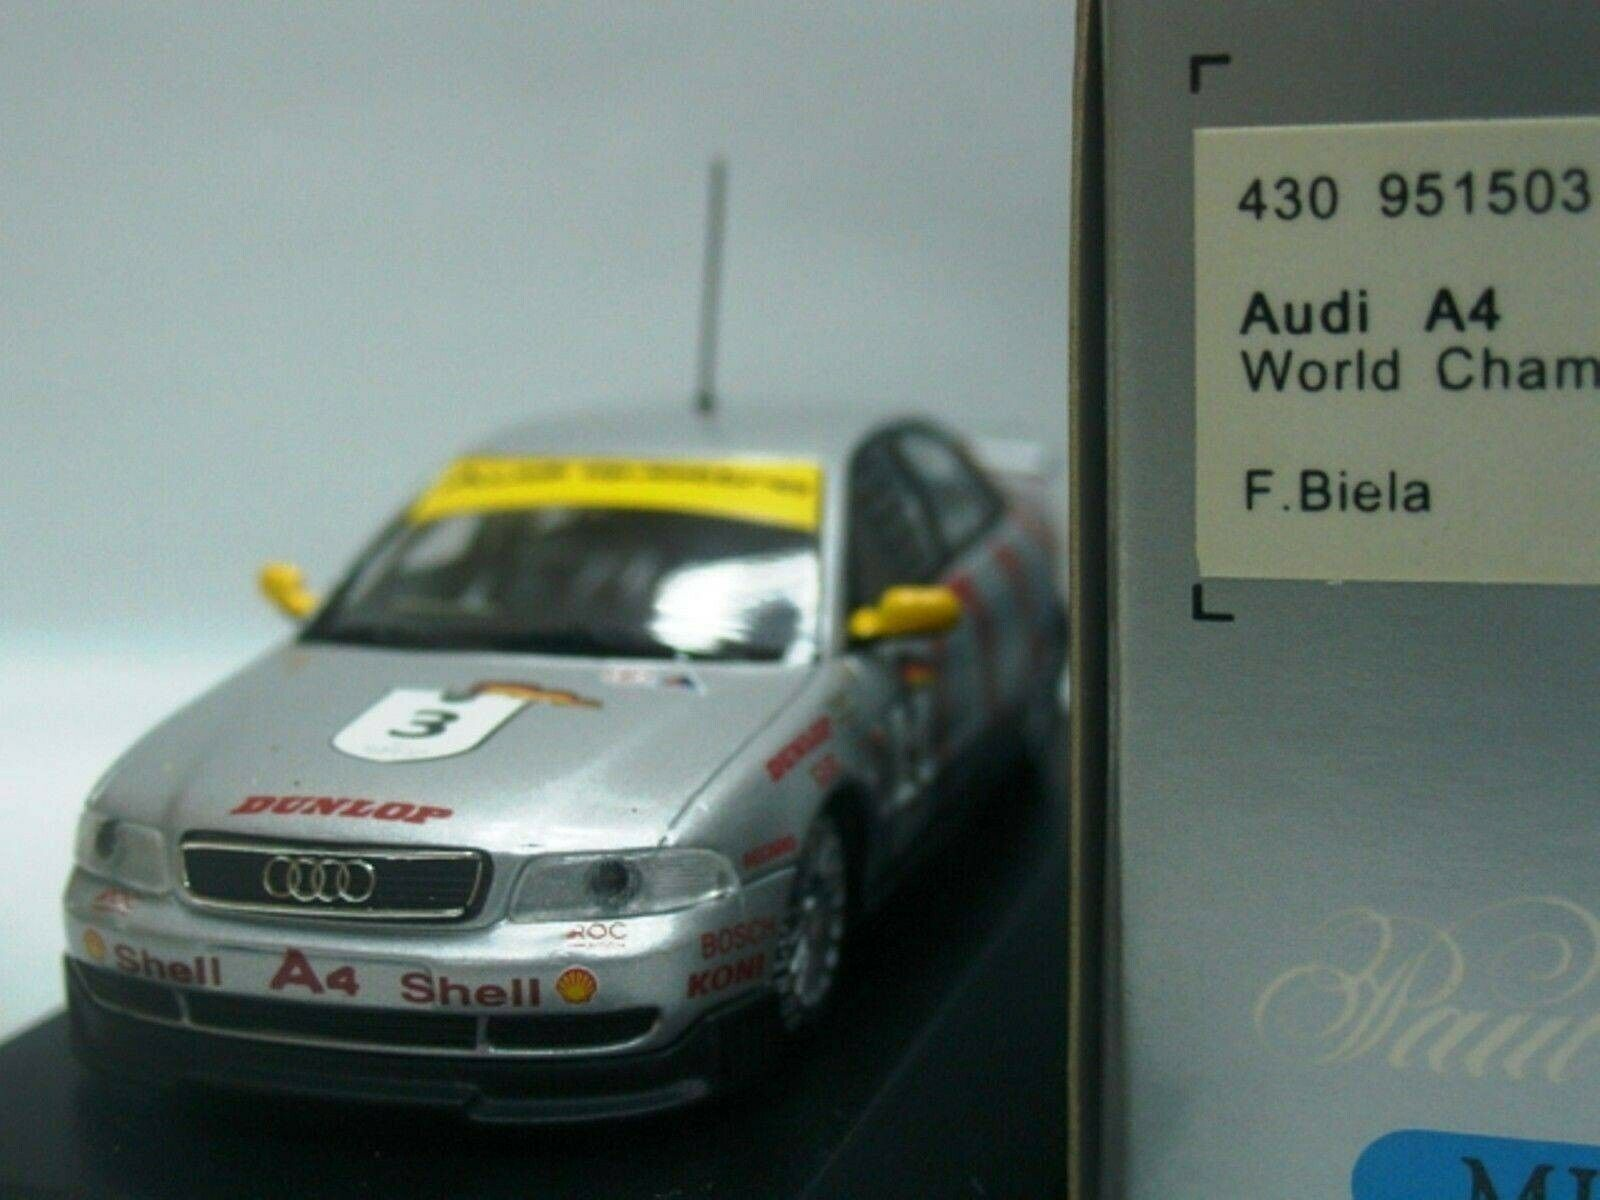 WOW EXTREMELY RARE Audi A4 Quattro 1995 Biela World Champion 1 43 Minichamps